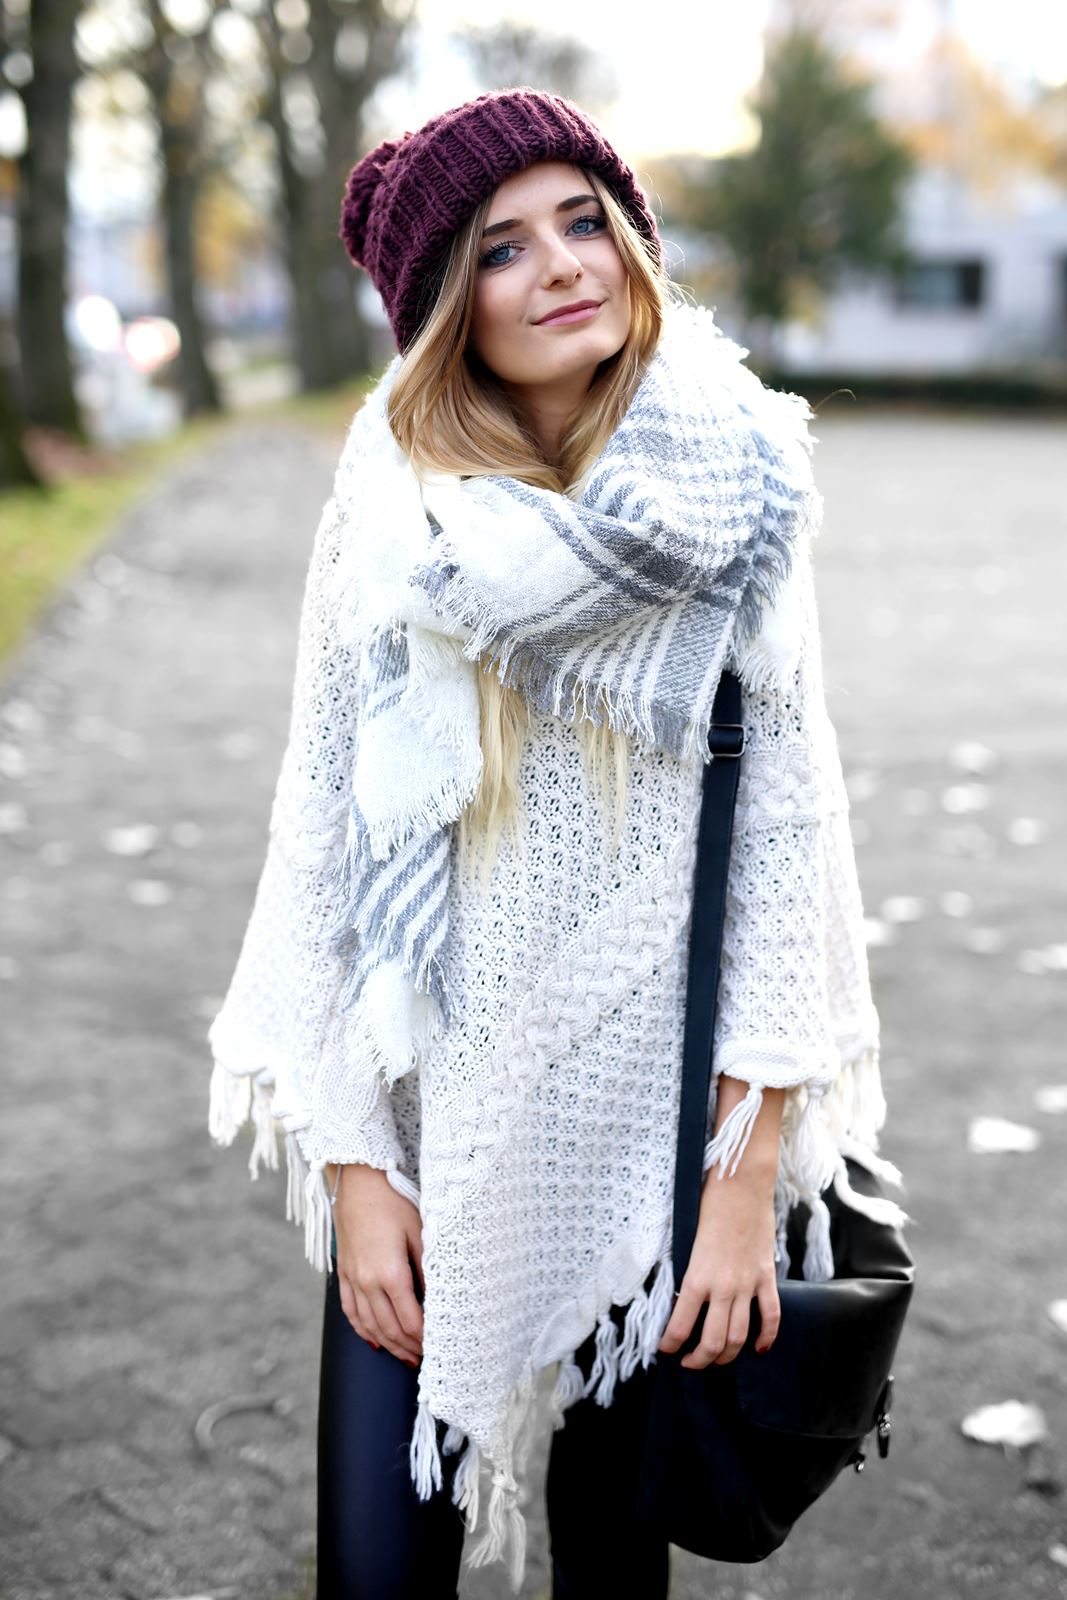 modeblog-german-fashion-blog-herbst-outfit-poncho-xxl-schal-6